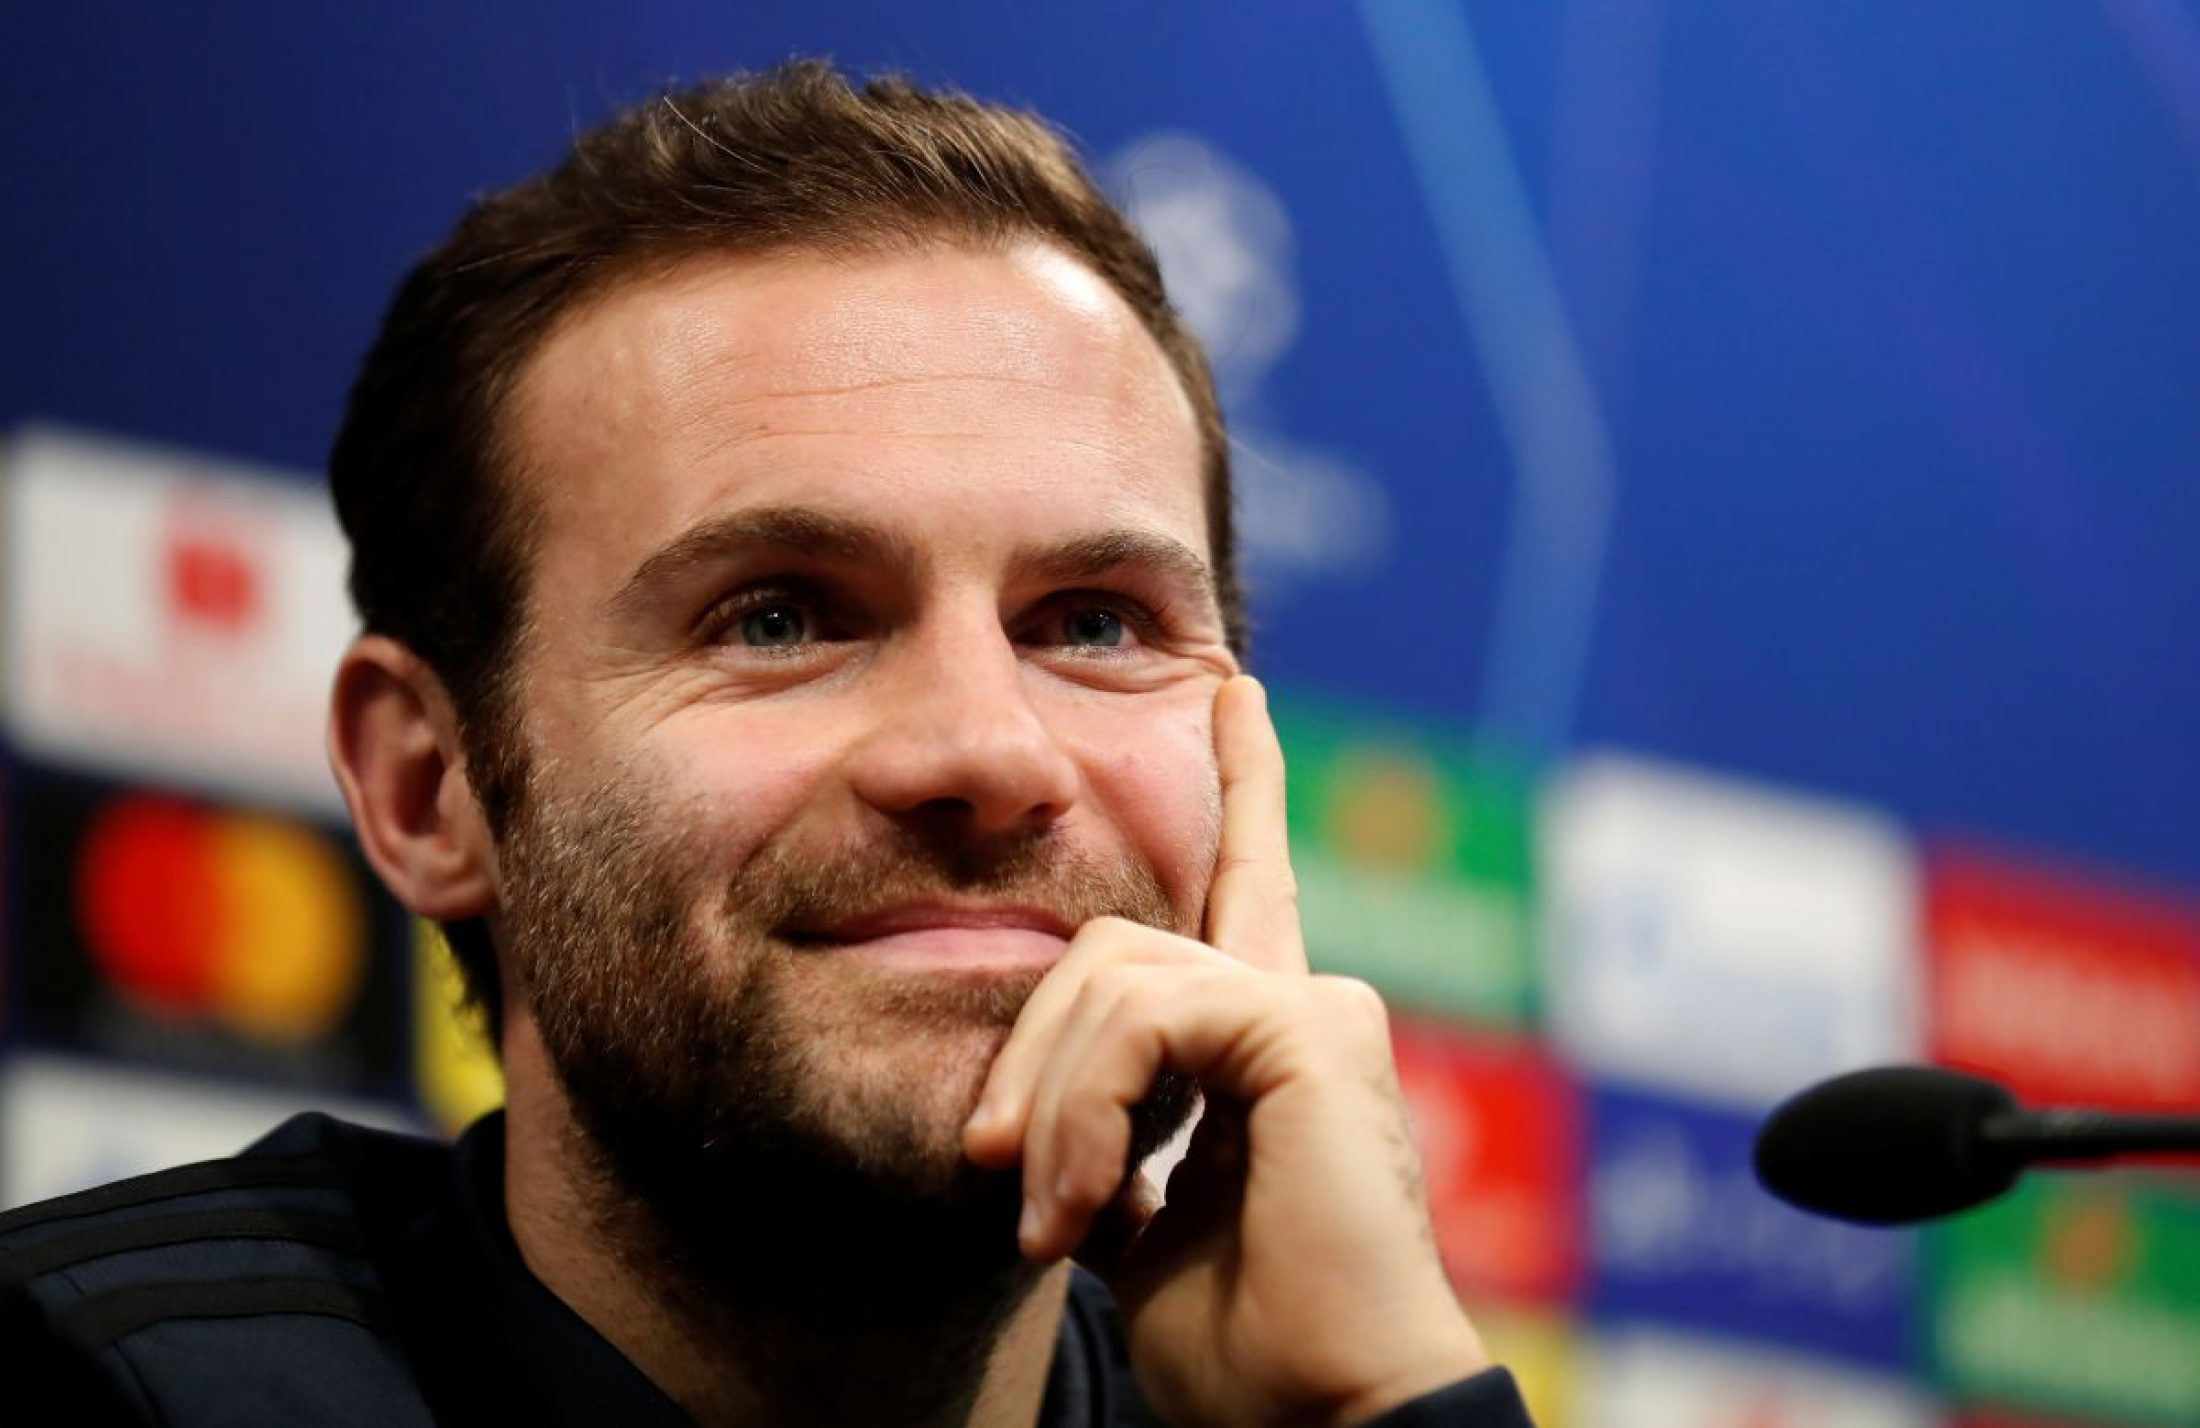 Manchester United's Juan Mata helped launch Common Goal, which uses football to drive positive change